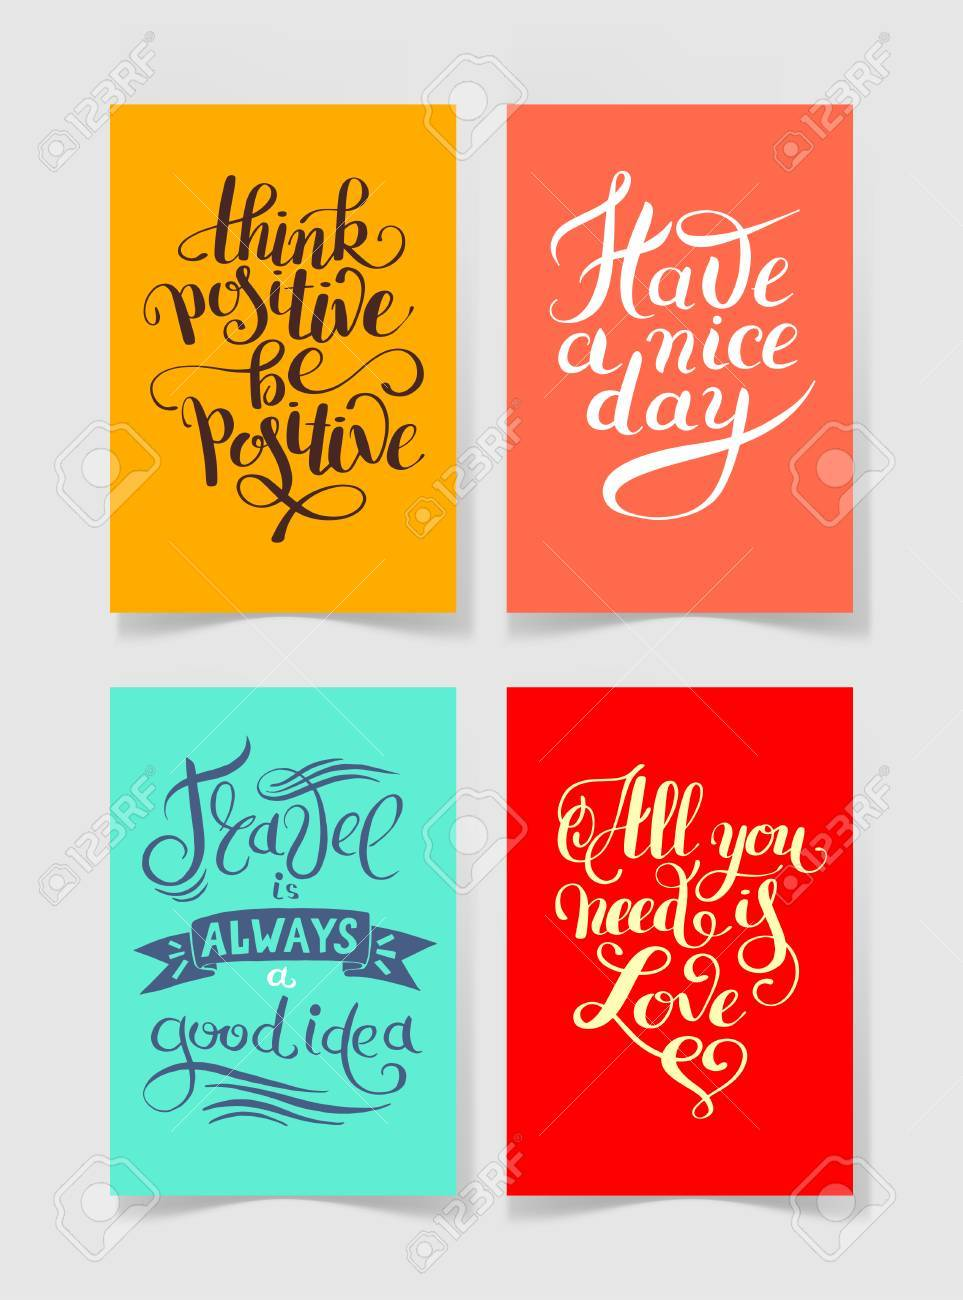 photograph about Printable Positive Quotes called mounted of 4 vibrant hues handwritten lettering good offers..